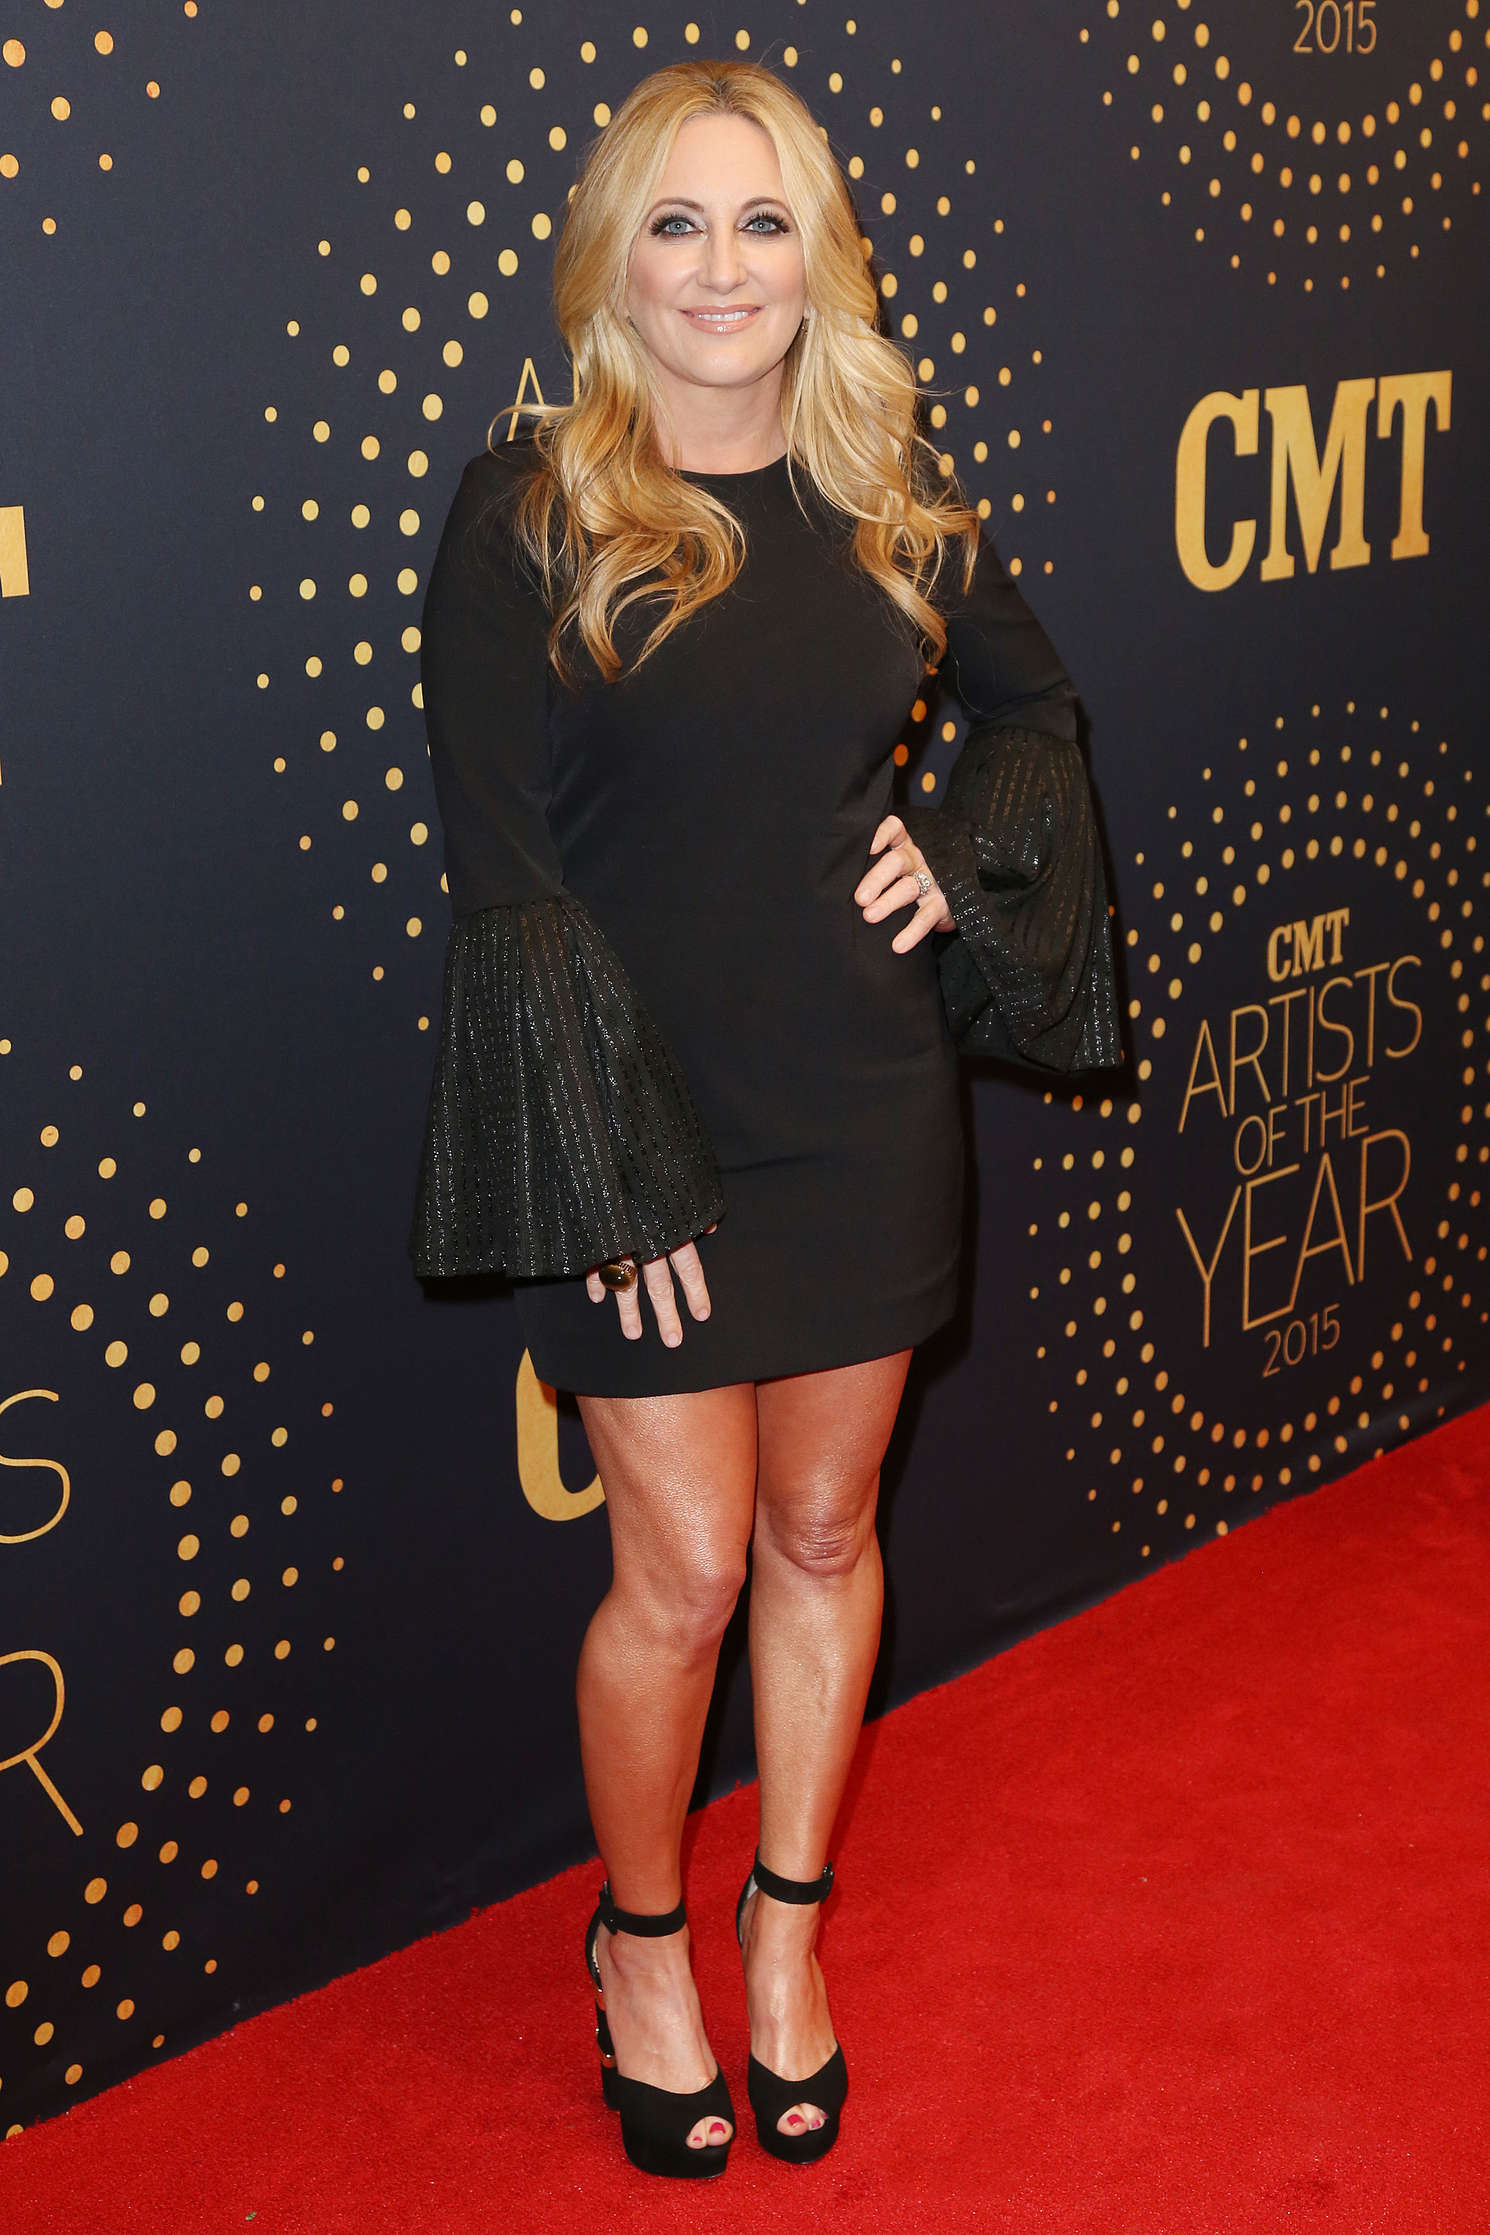 lee ann womack 2015 cmt artists of the year 05 gotceleb